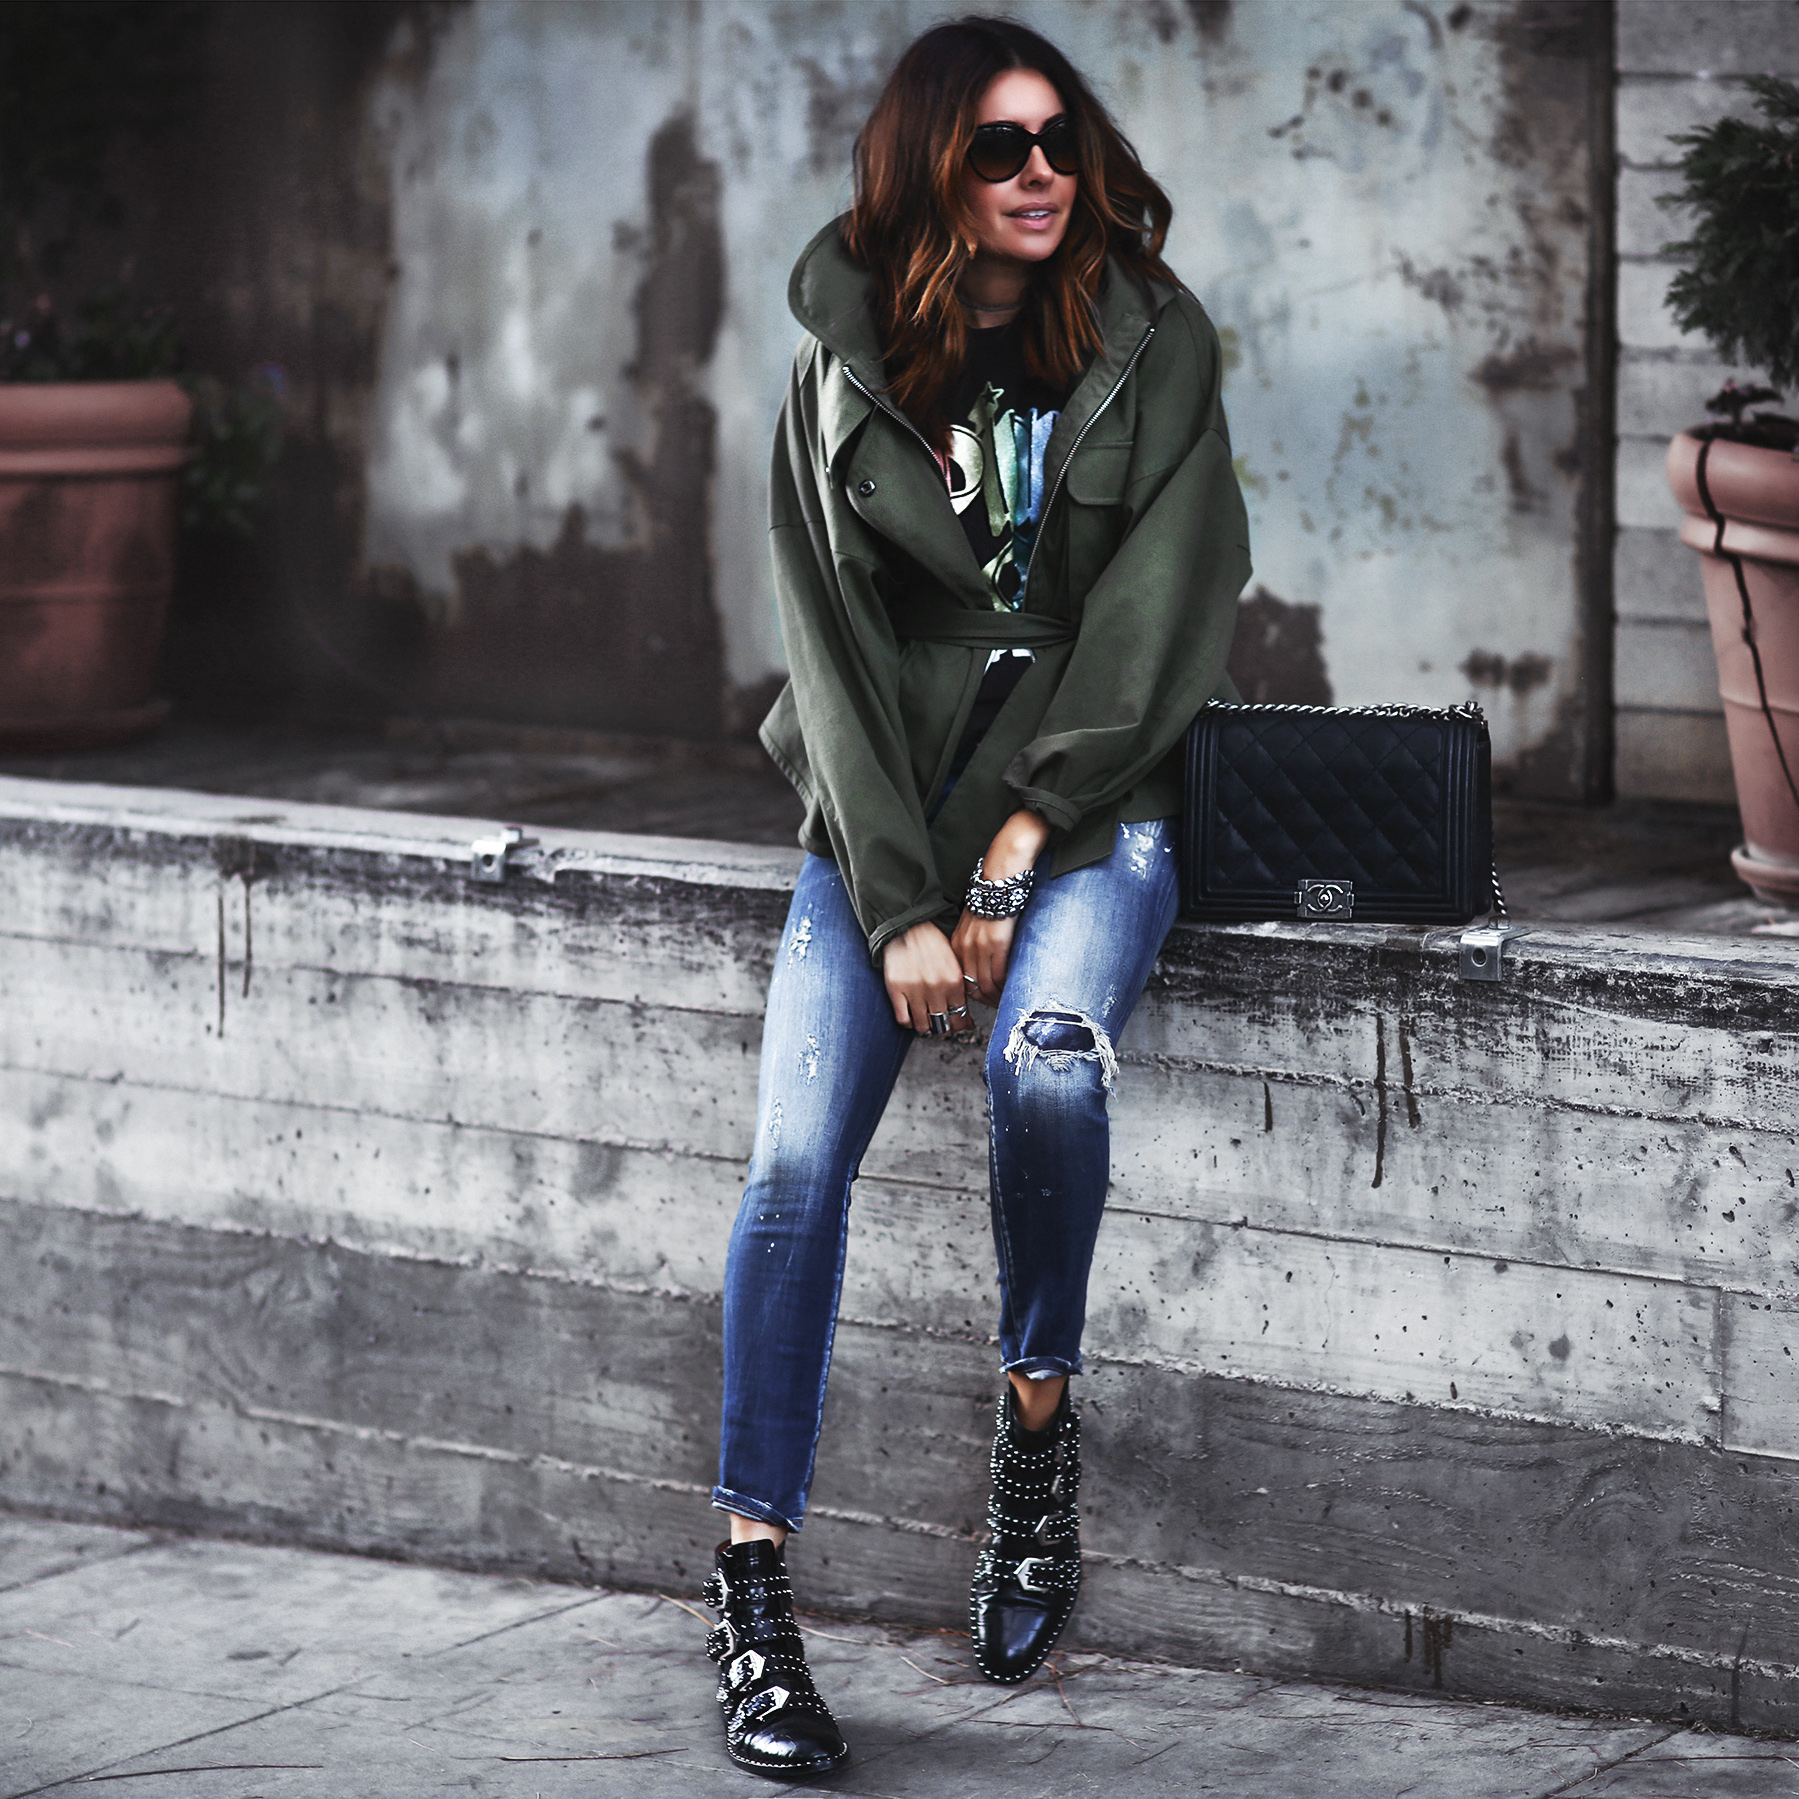 rock band tshirt, army green jacket, ripped skinny jeans, givenchy booties